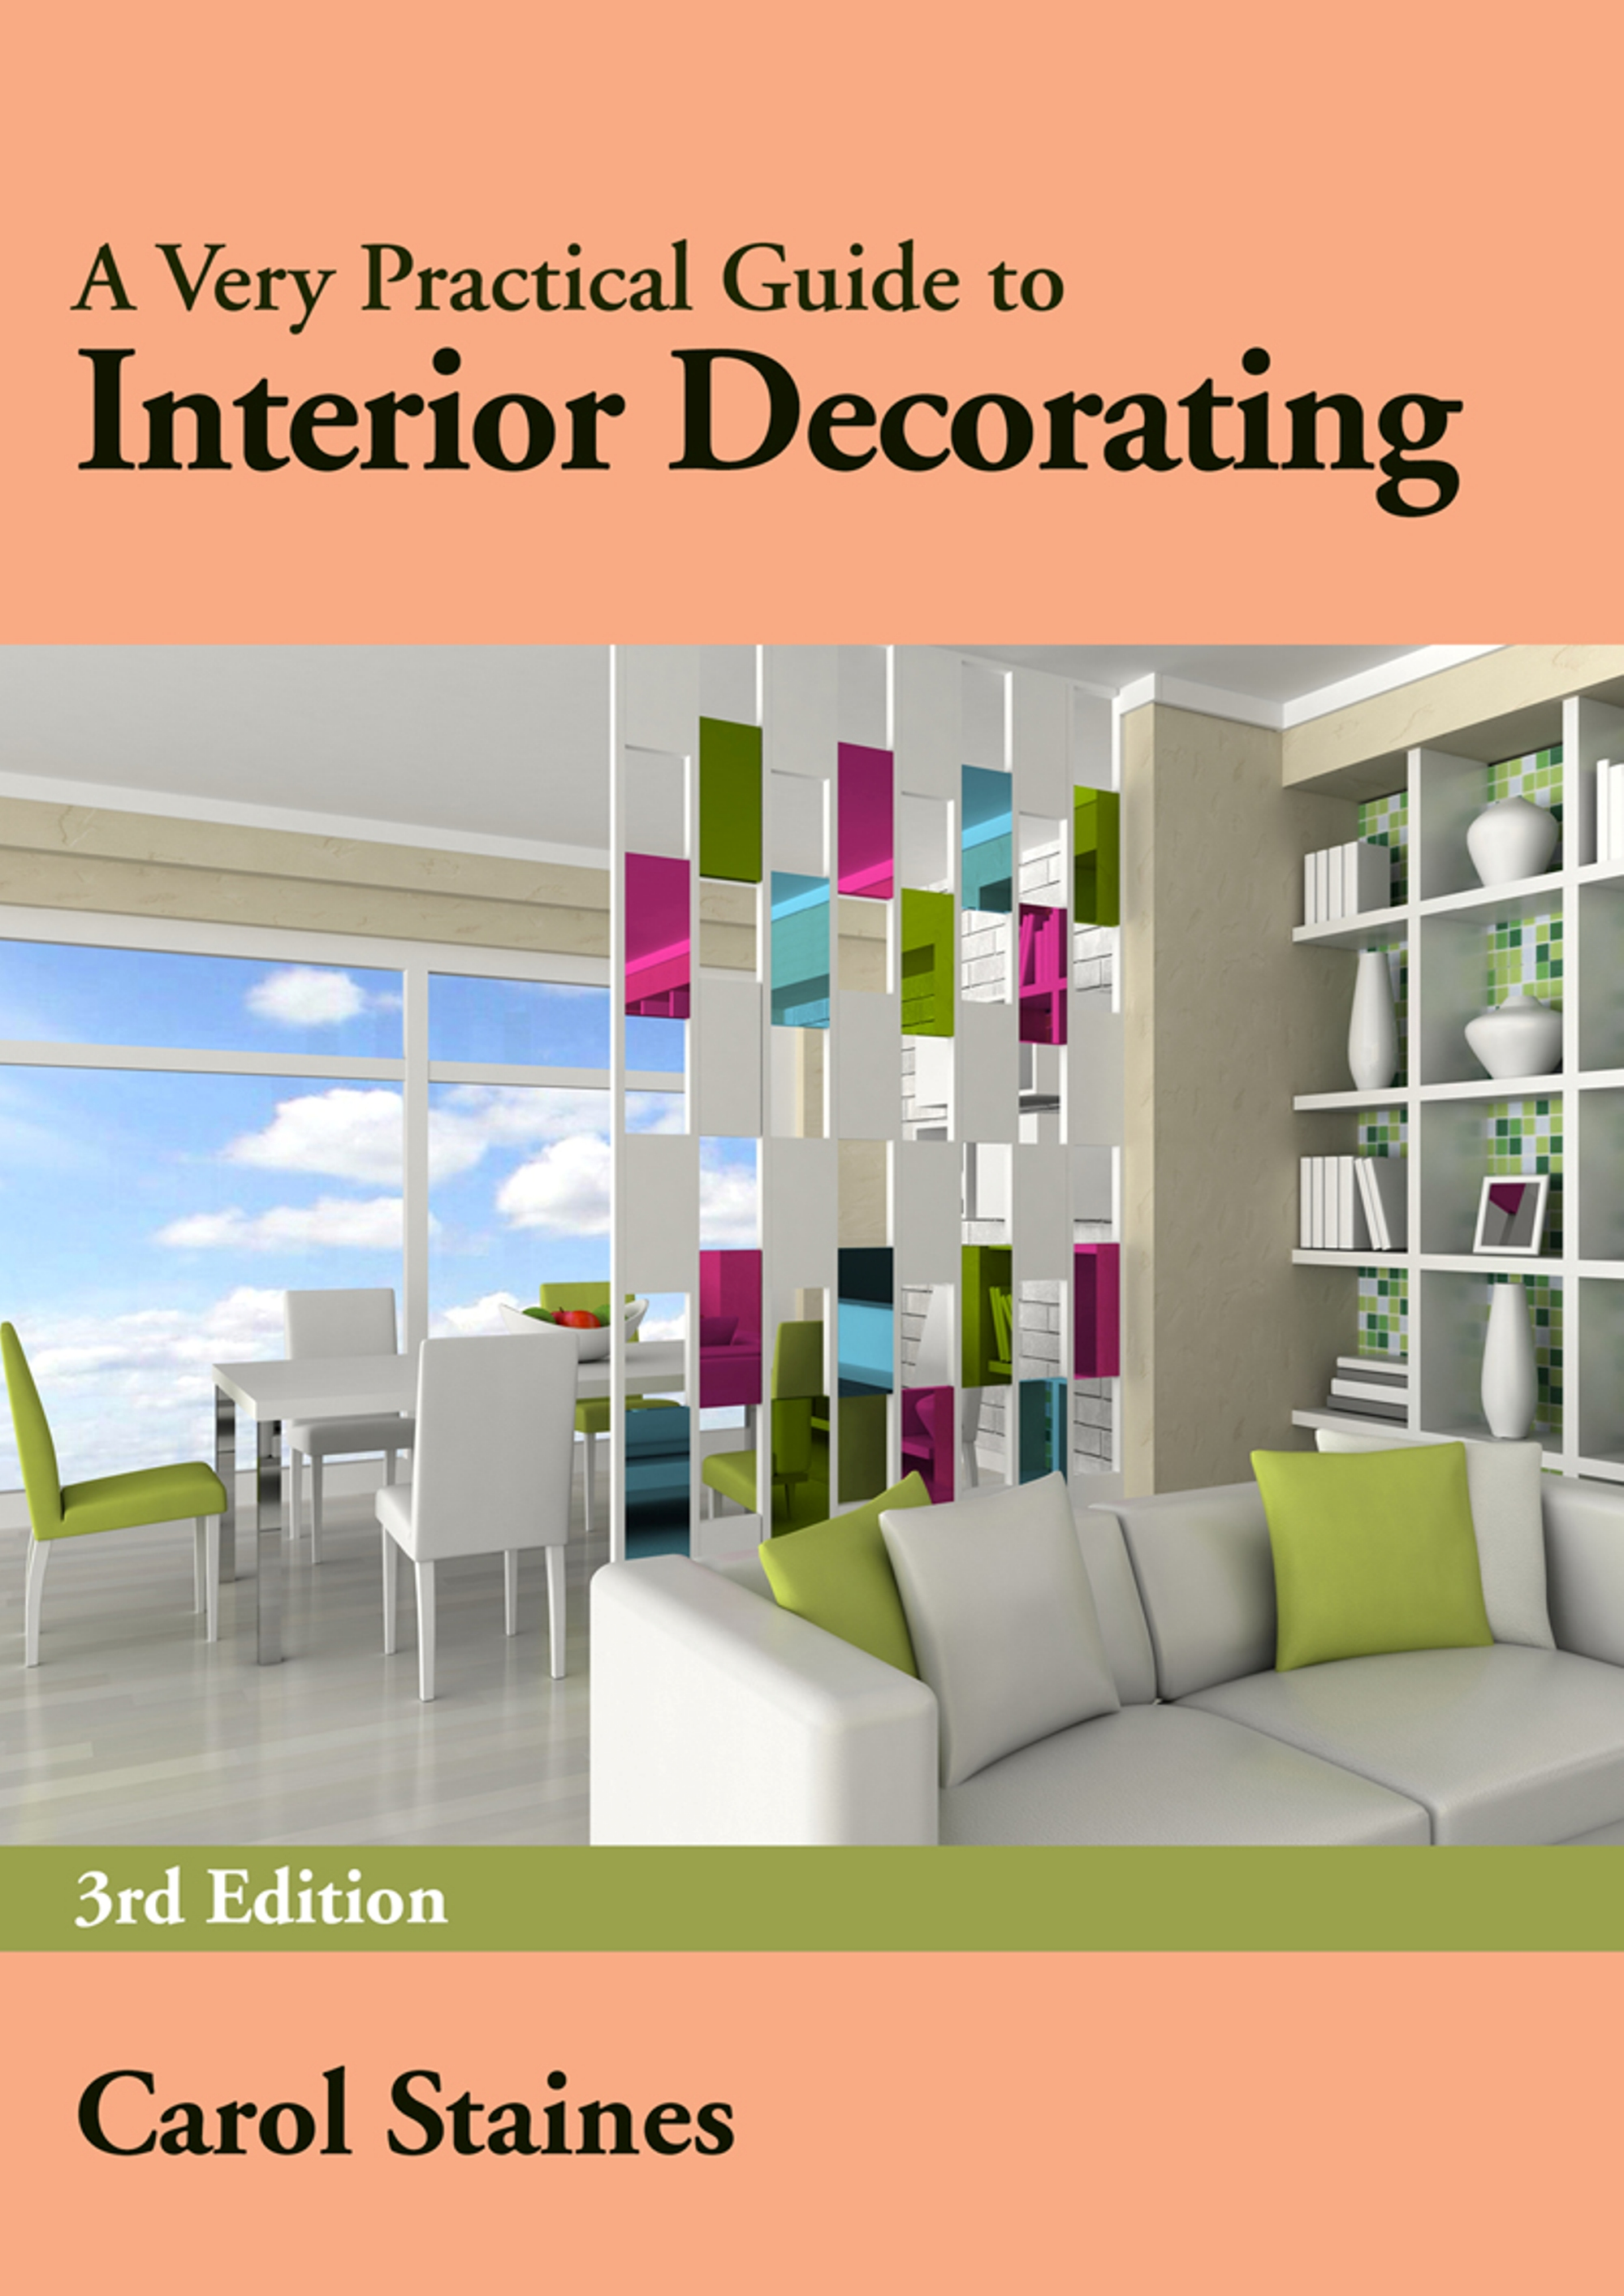 A Very Practical Guide To Interior Decorating 3rd Edition Carol U0026 Allan  Staines